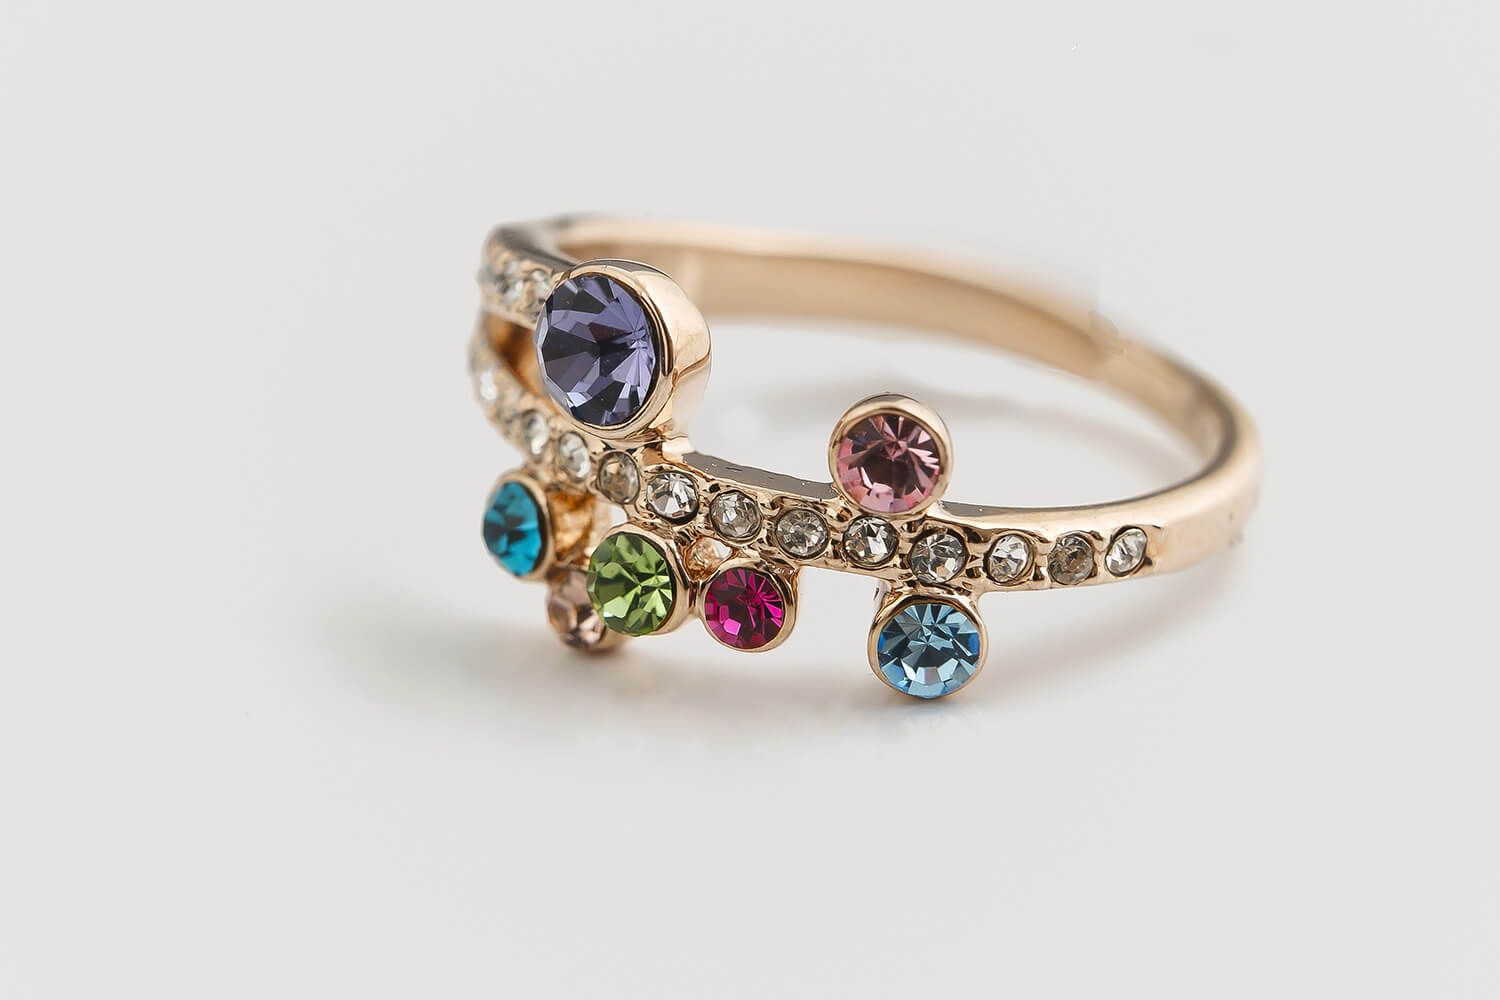 A gold ring with multicolored stones.